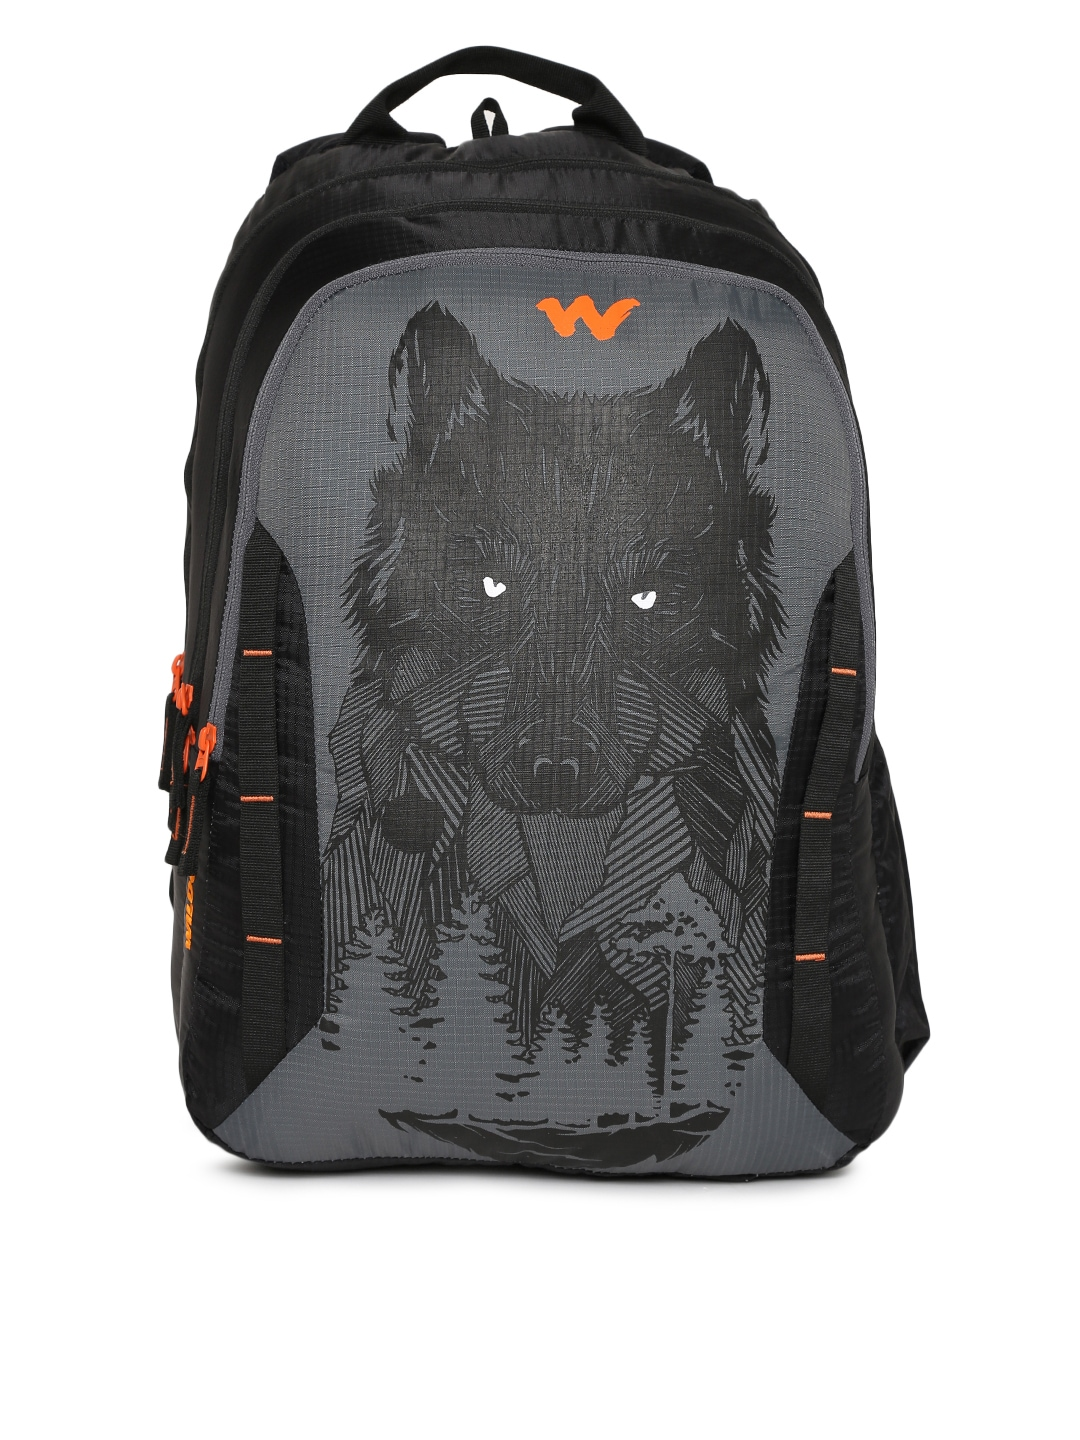 Men Backpacks Wildcraft Rucksacks - Buy Men Backpacks Wildcraft Rucksacks  online in India 919d41924905b